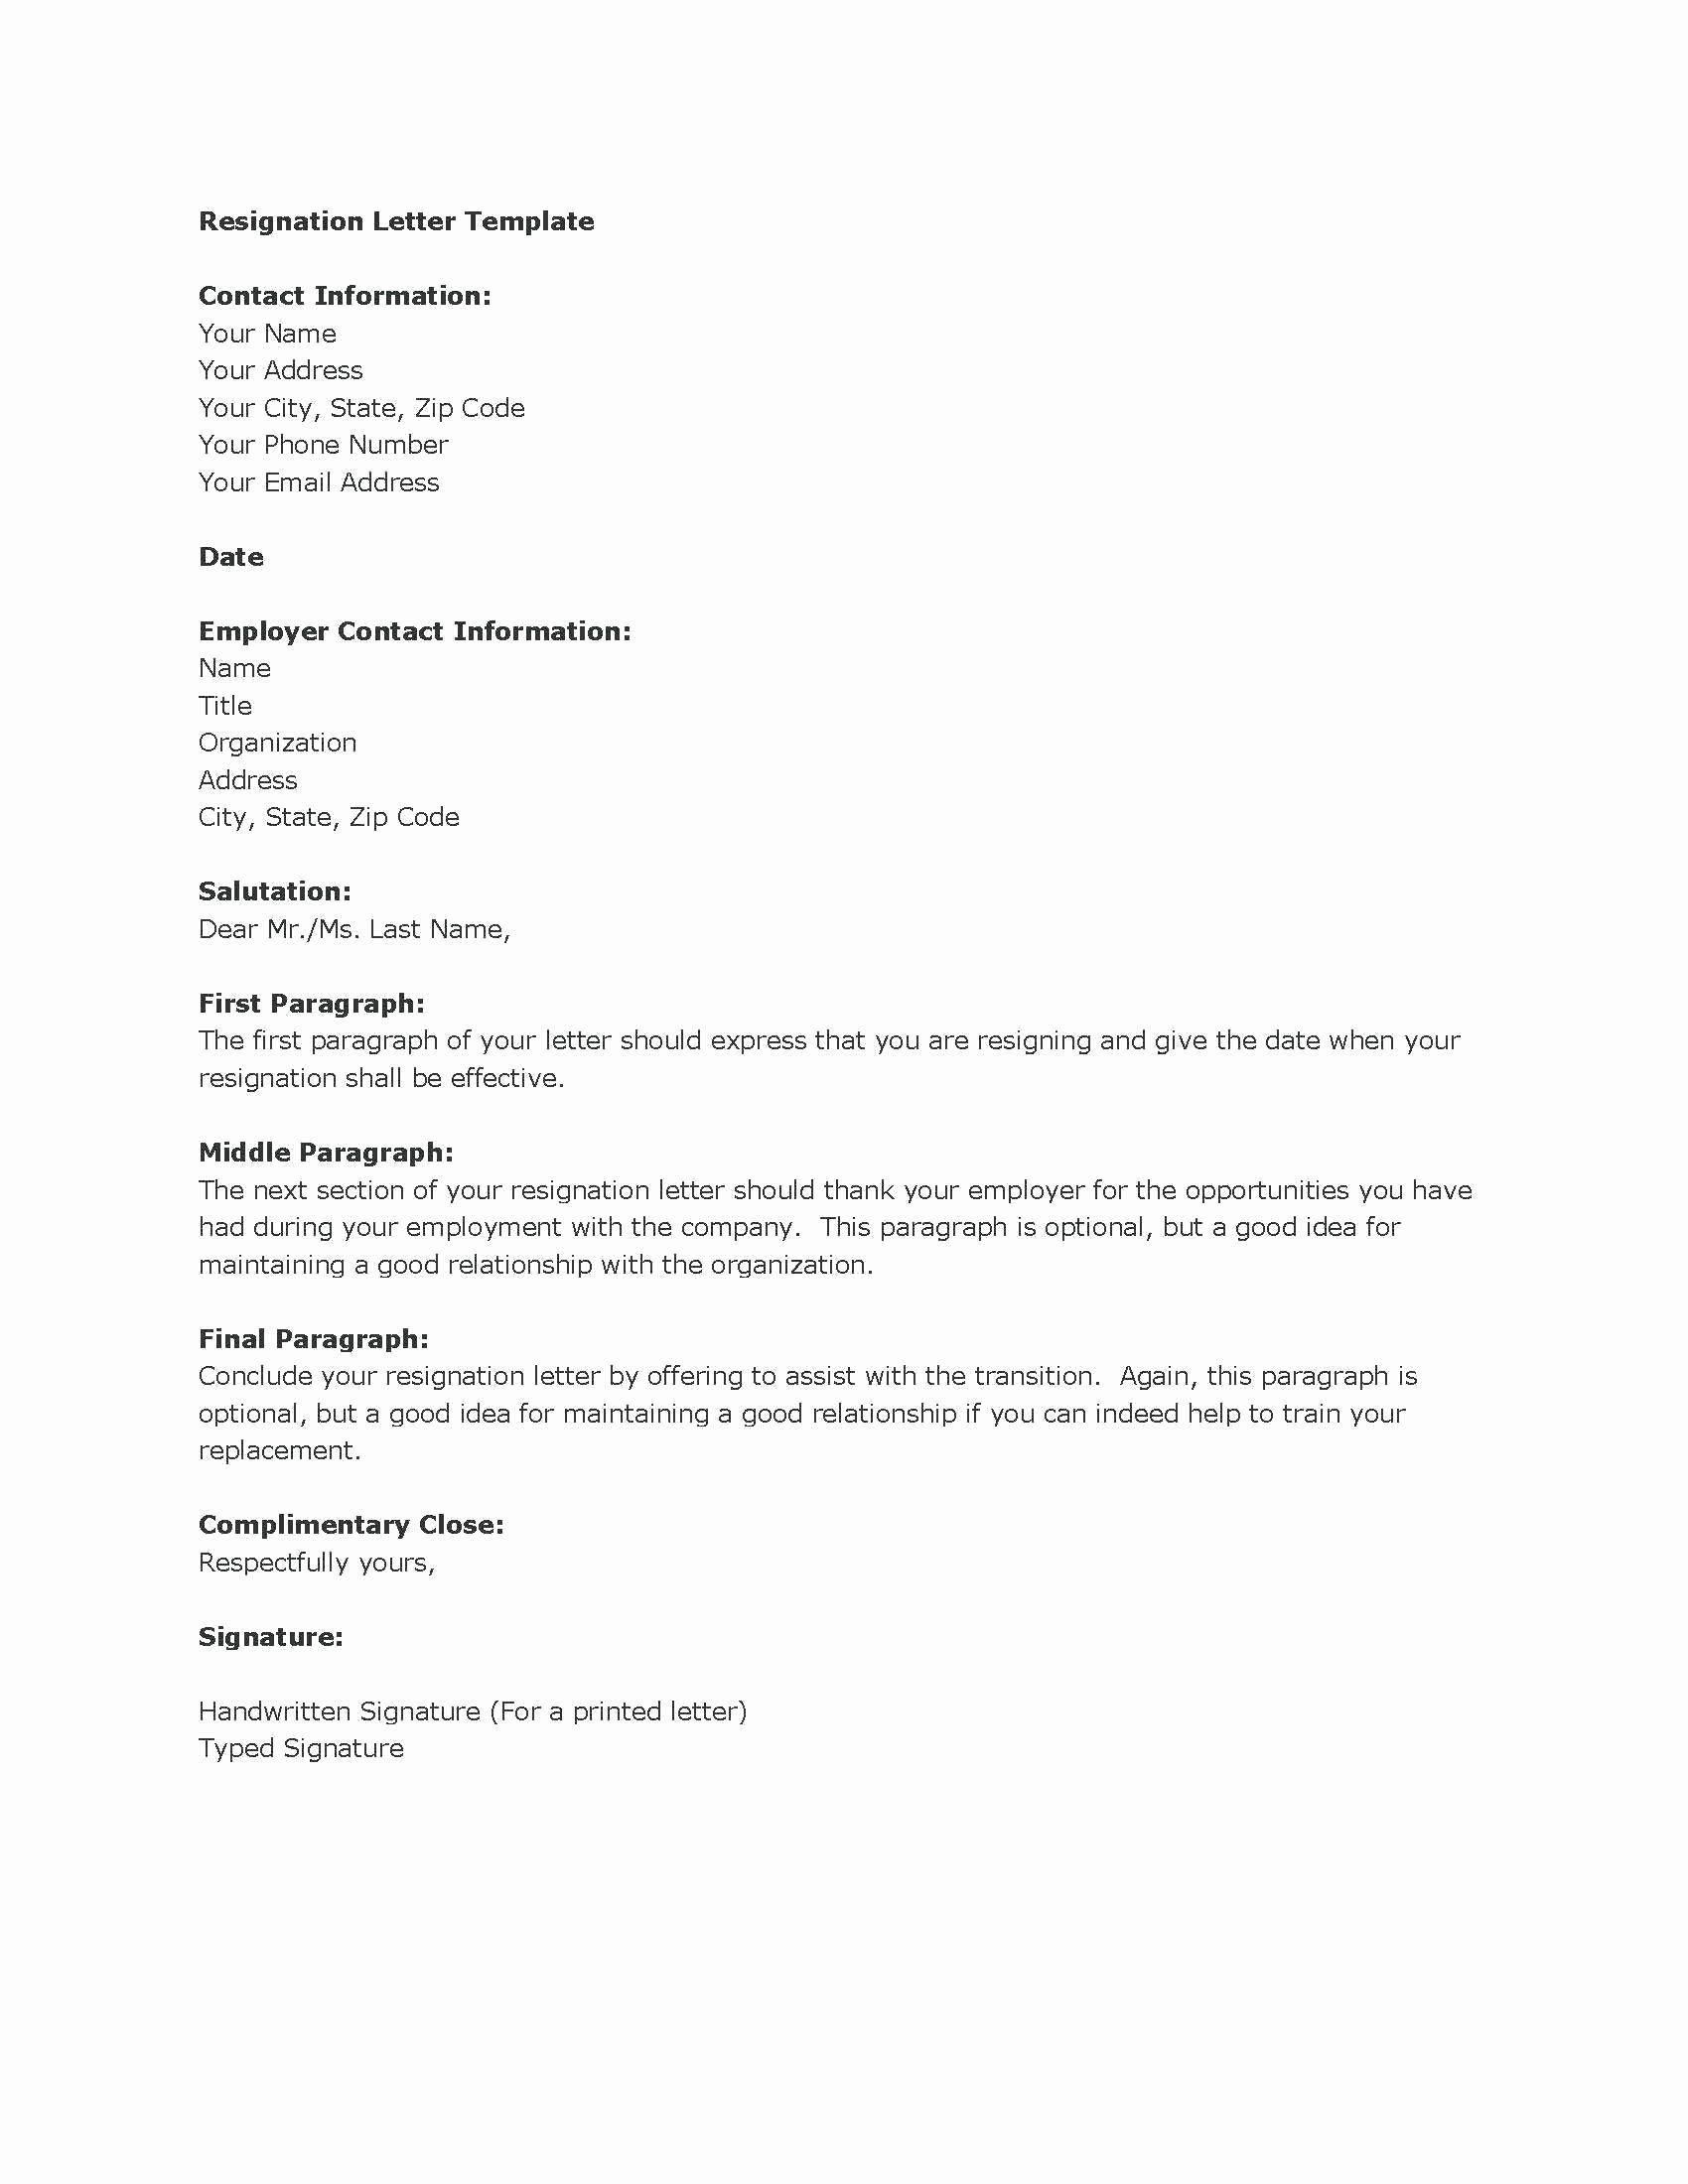 Letter Of Resignation Template Microsoft Beautiful Microsoft Word Resignation Letter Template Samples